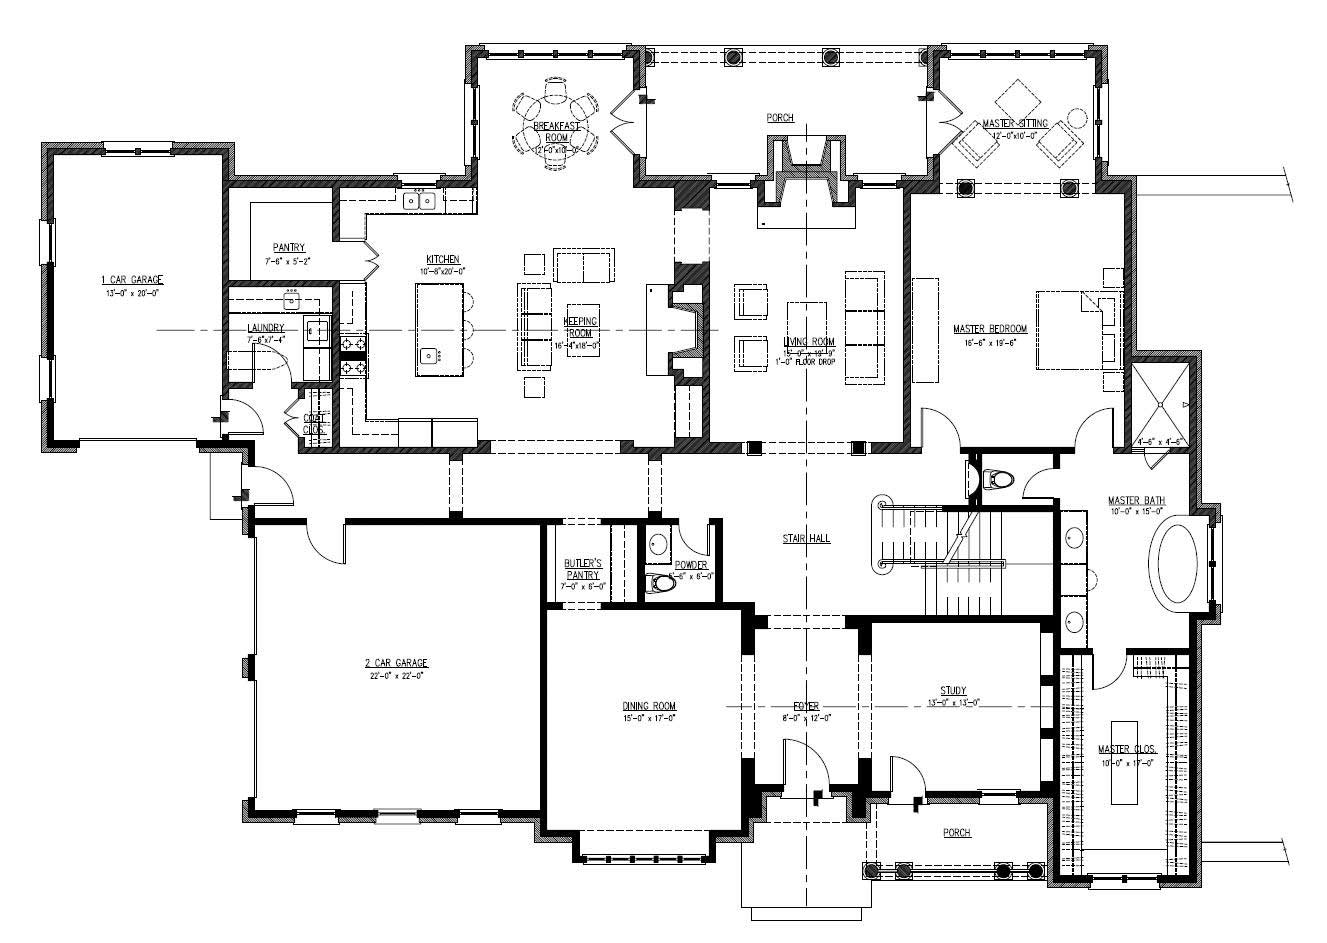 19 Unique Large One Story House Plans Home Building